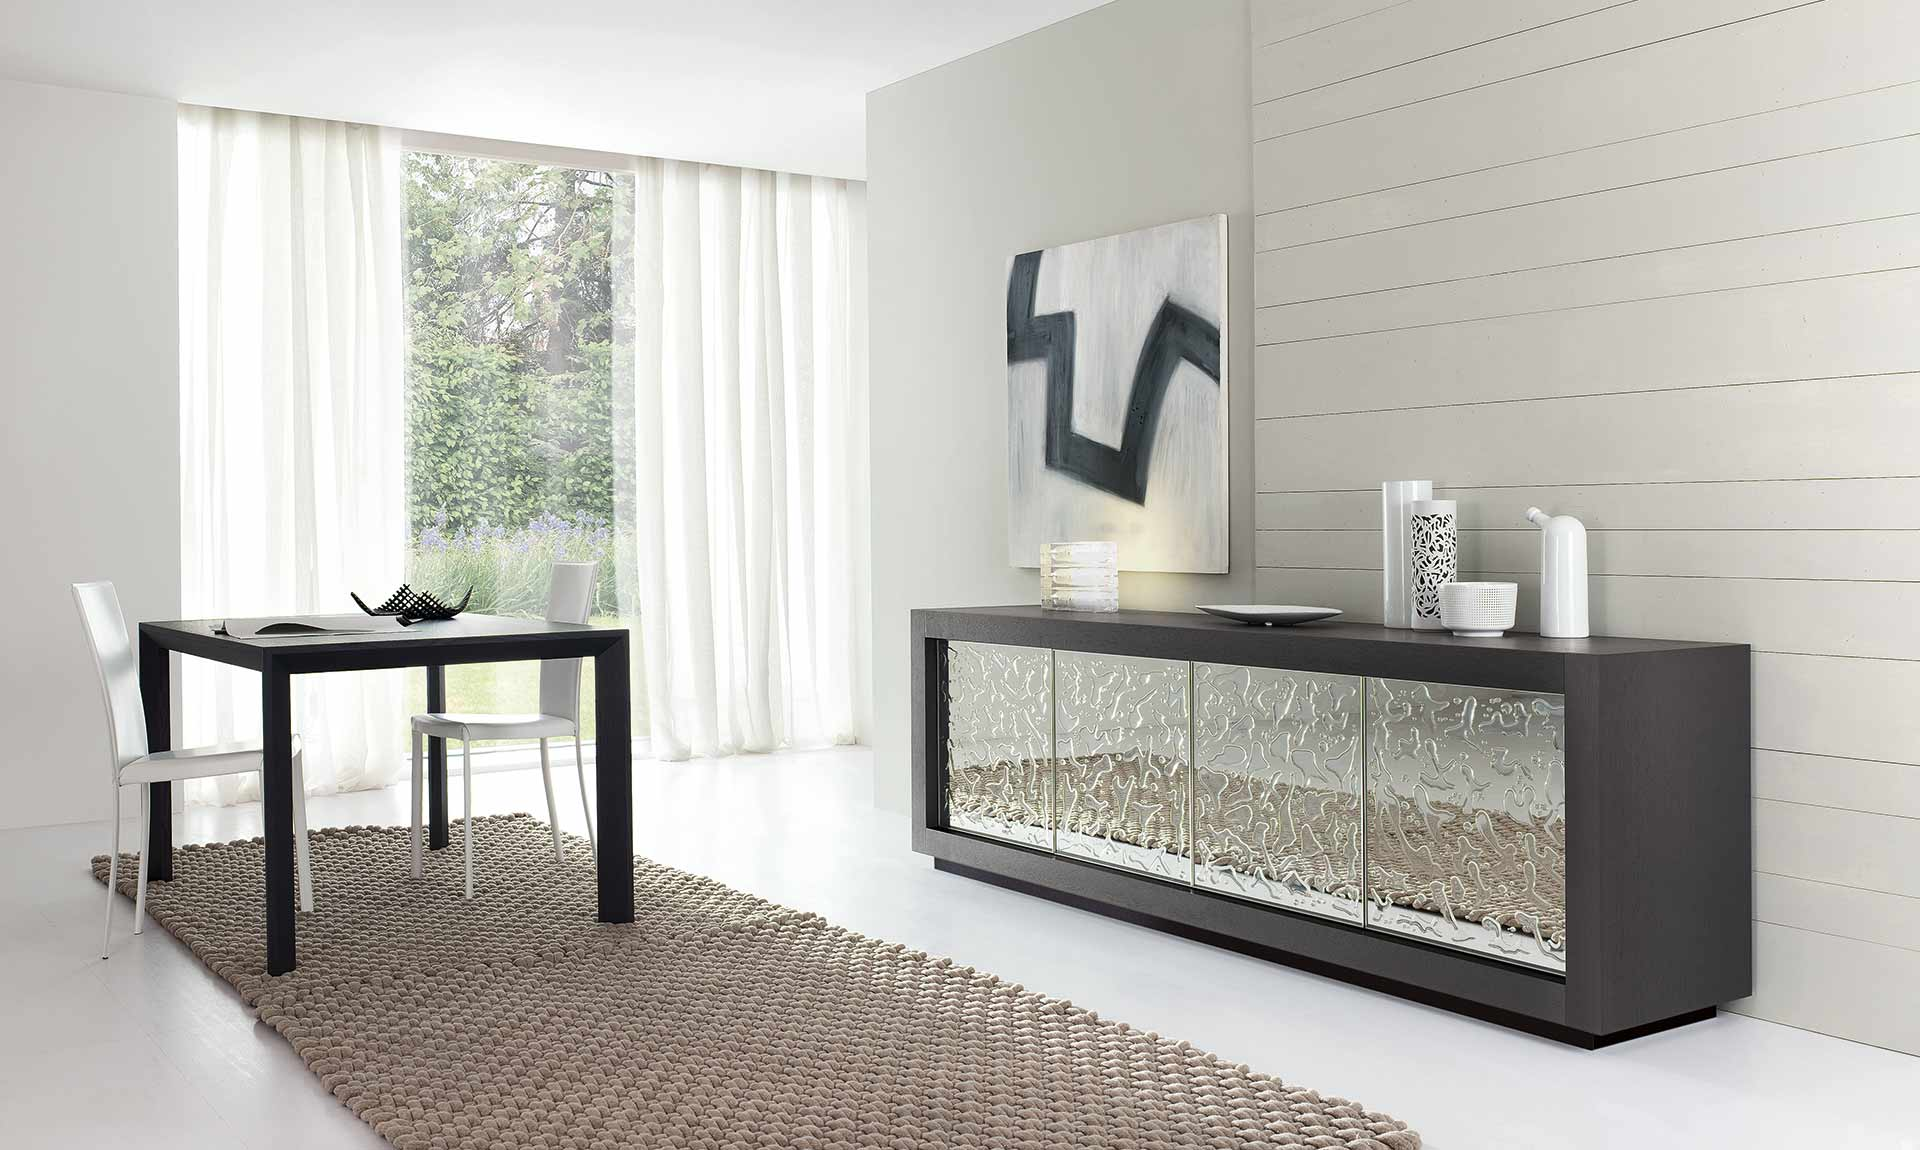 Custom Modern Italian Design sideboard PICASSO by Riflessi - made in Italy-Sideboard-picasso-p12-gocce-doors-by-riflessi